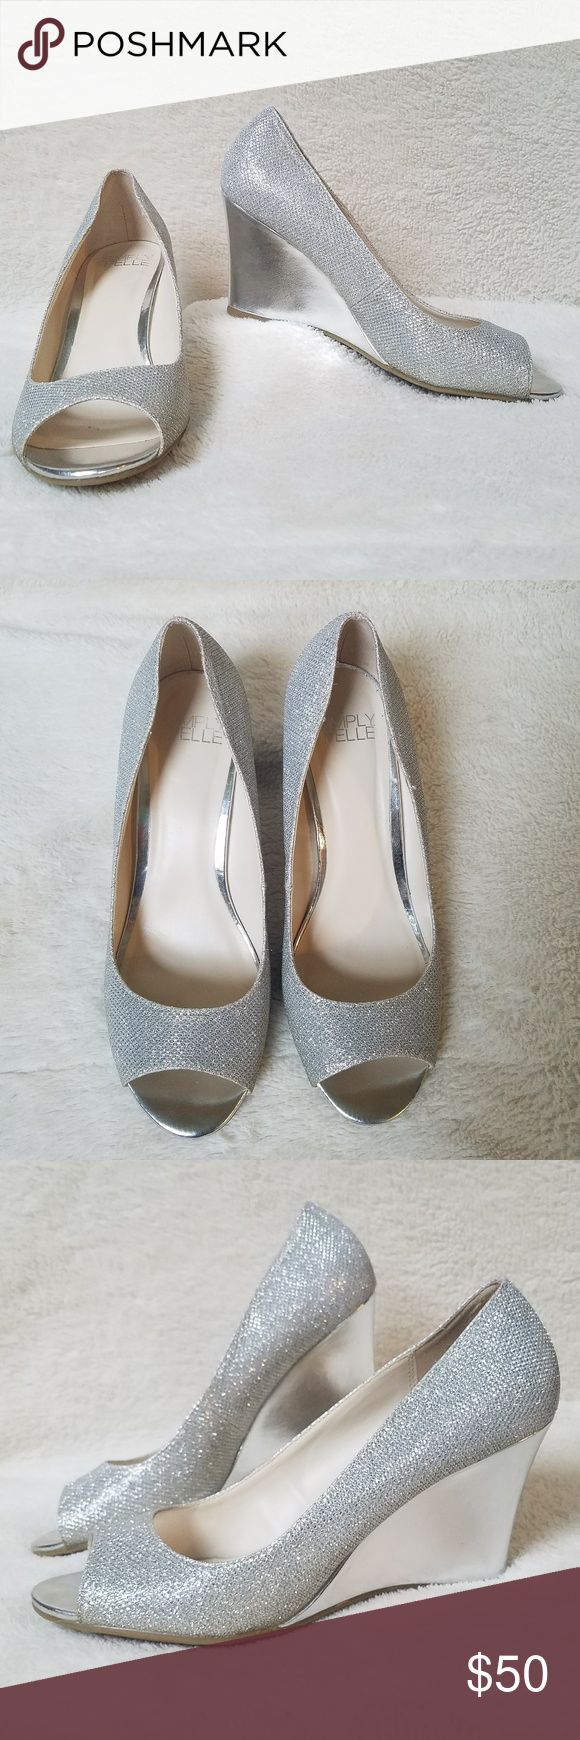 """Simply Pelle David's Bridal silver wedge shoes Simply Pelle """"Wendie"""" silver peep toe wedges; size 8. This brand of shoe is available through David's Bridal and make a beautifully chic addition to your wedding day, or as a mother of the bride/groom shoe! These shoes have a 3"""" wedge heel. Worn once for a wedding. VERY minor wear to the soles, and a couple very minor marks to the right wedge. My guess is they are indentations from resting heel against a chair; I've shown in the pictures…"""